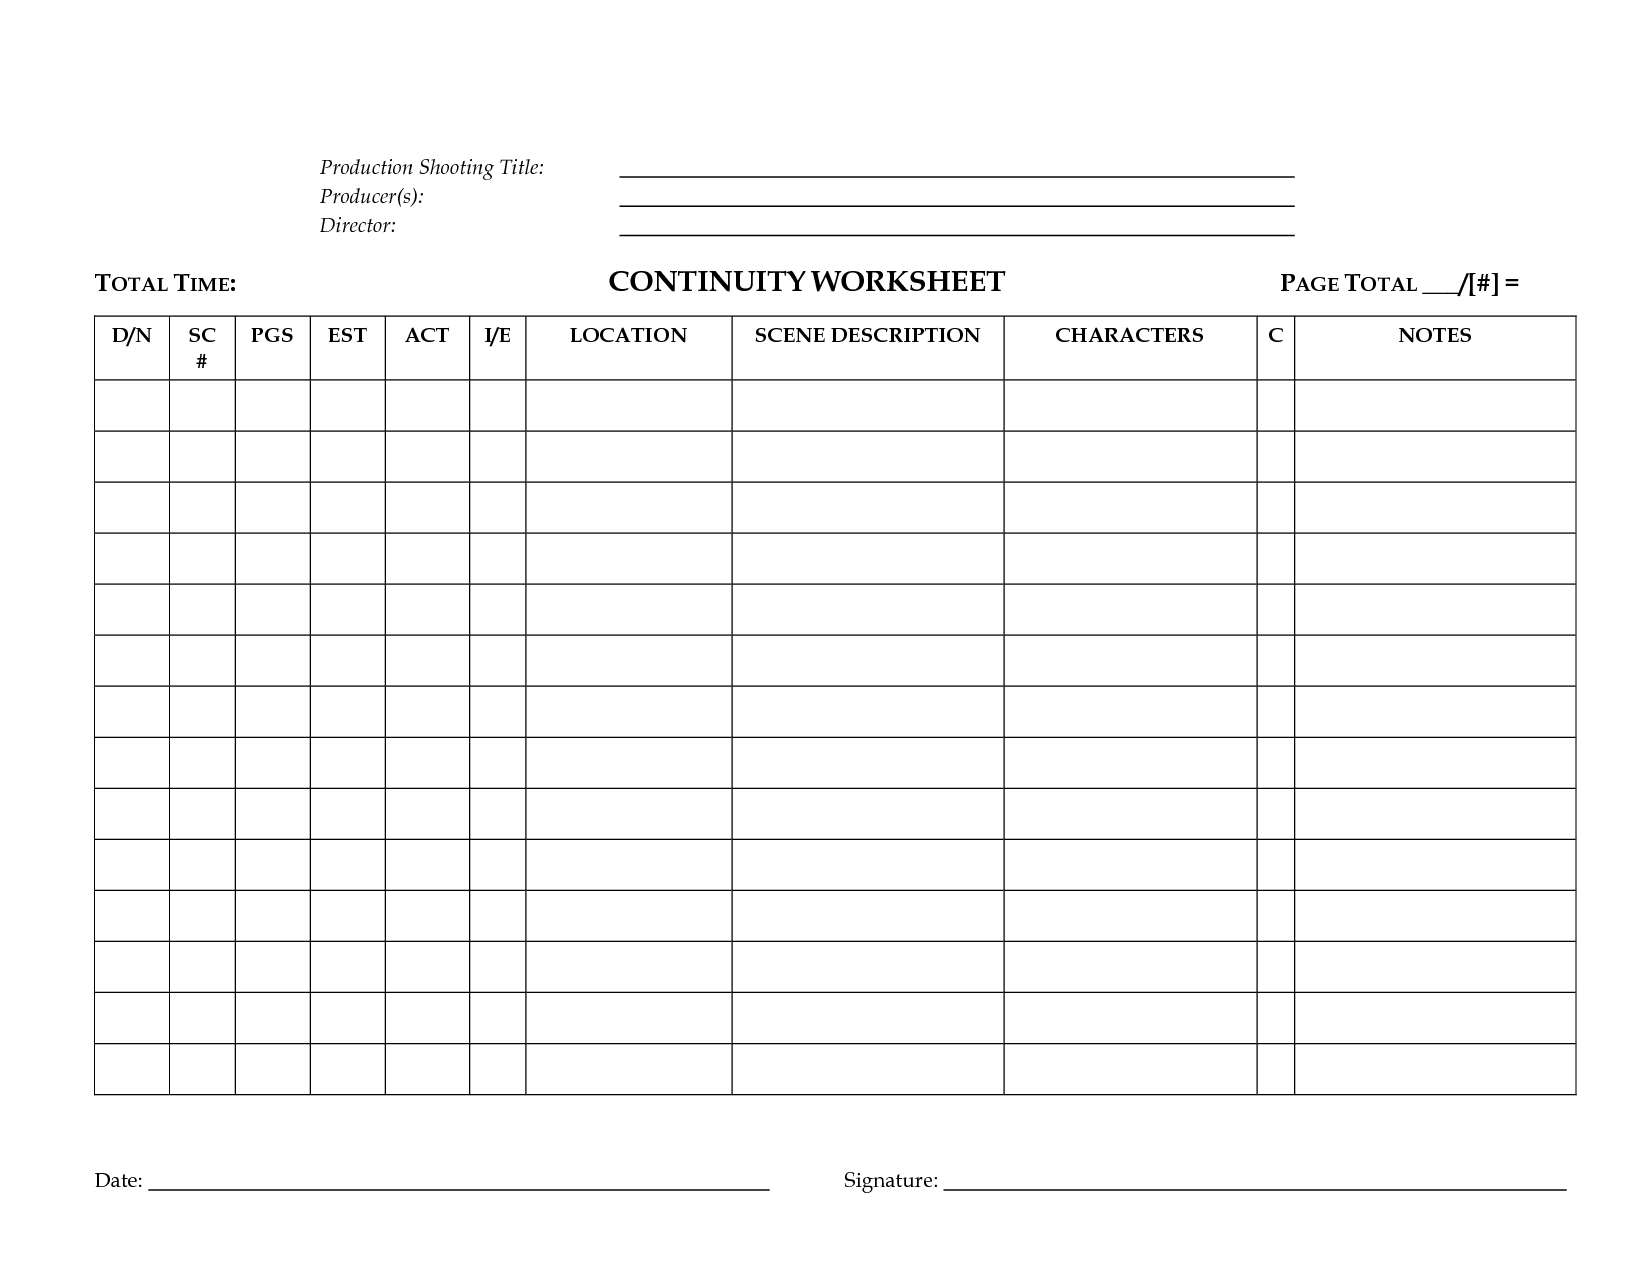 Continuity worksheet for film or tv production by megadox for Script supervisor notes template